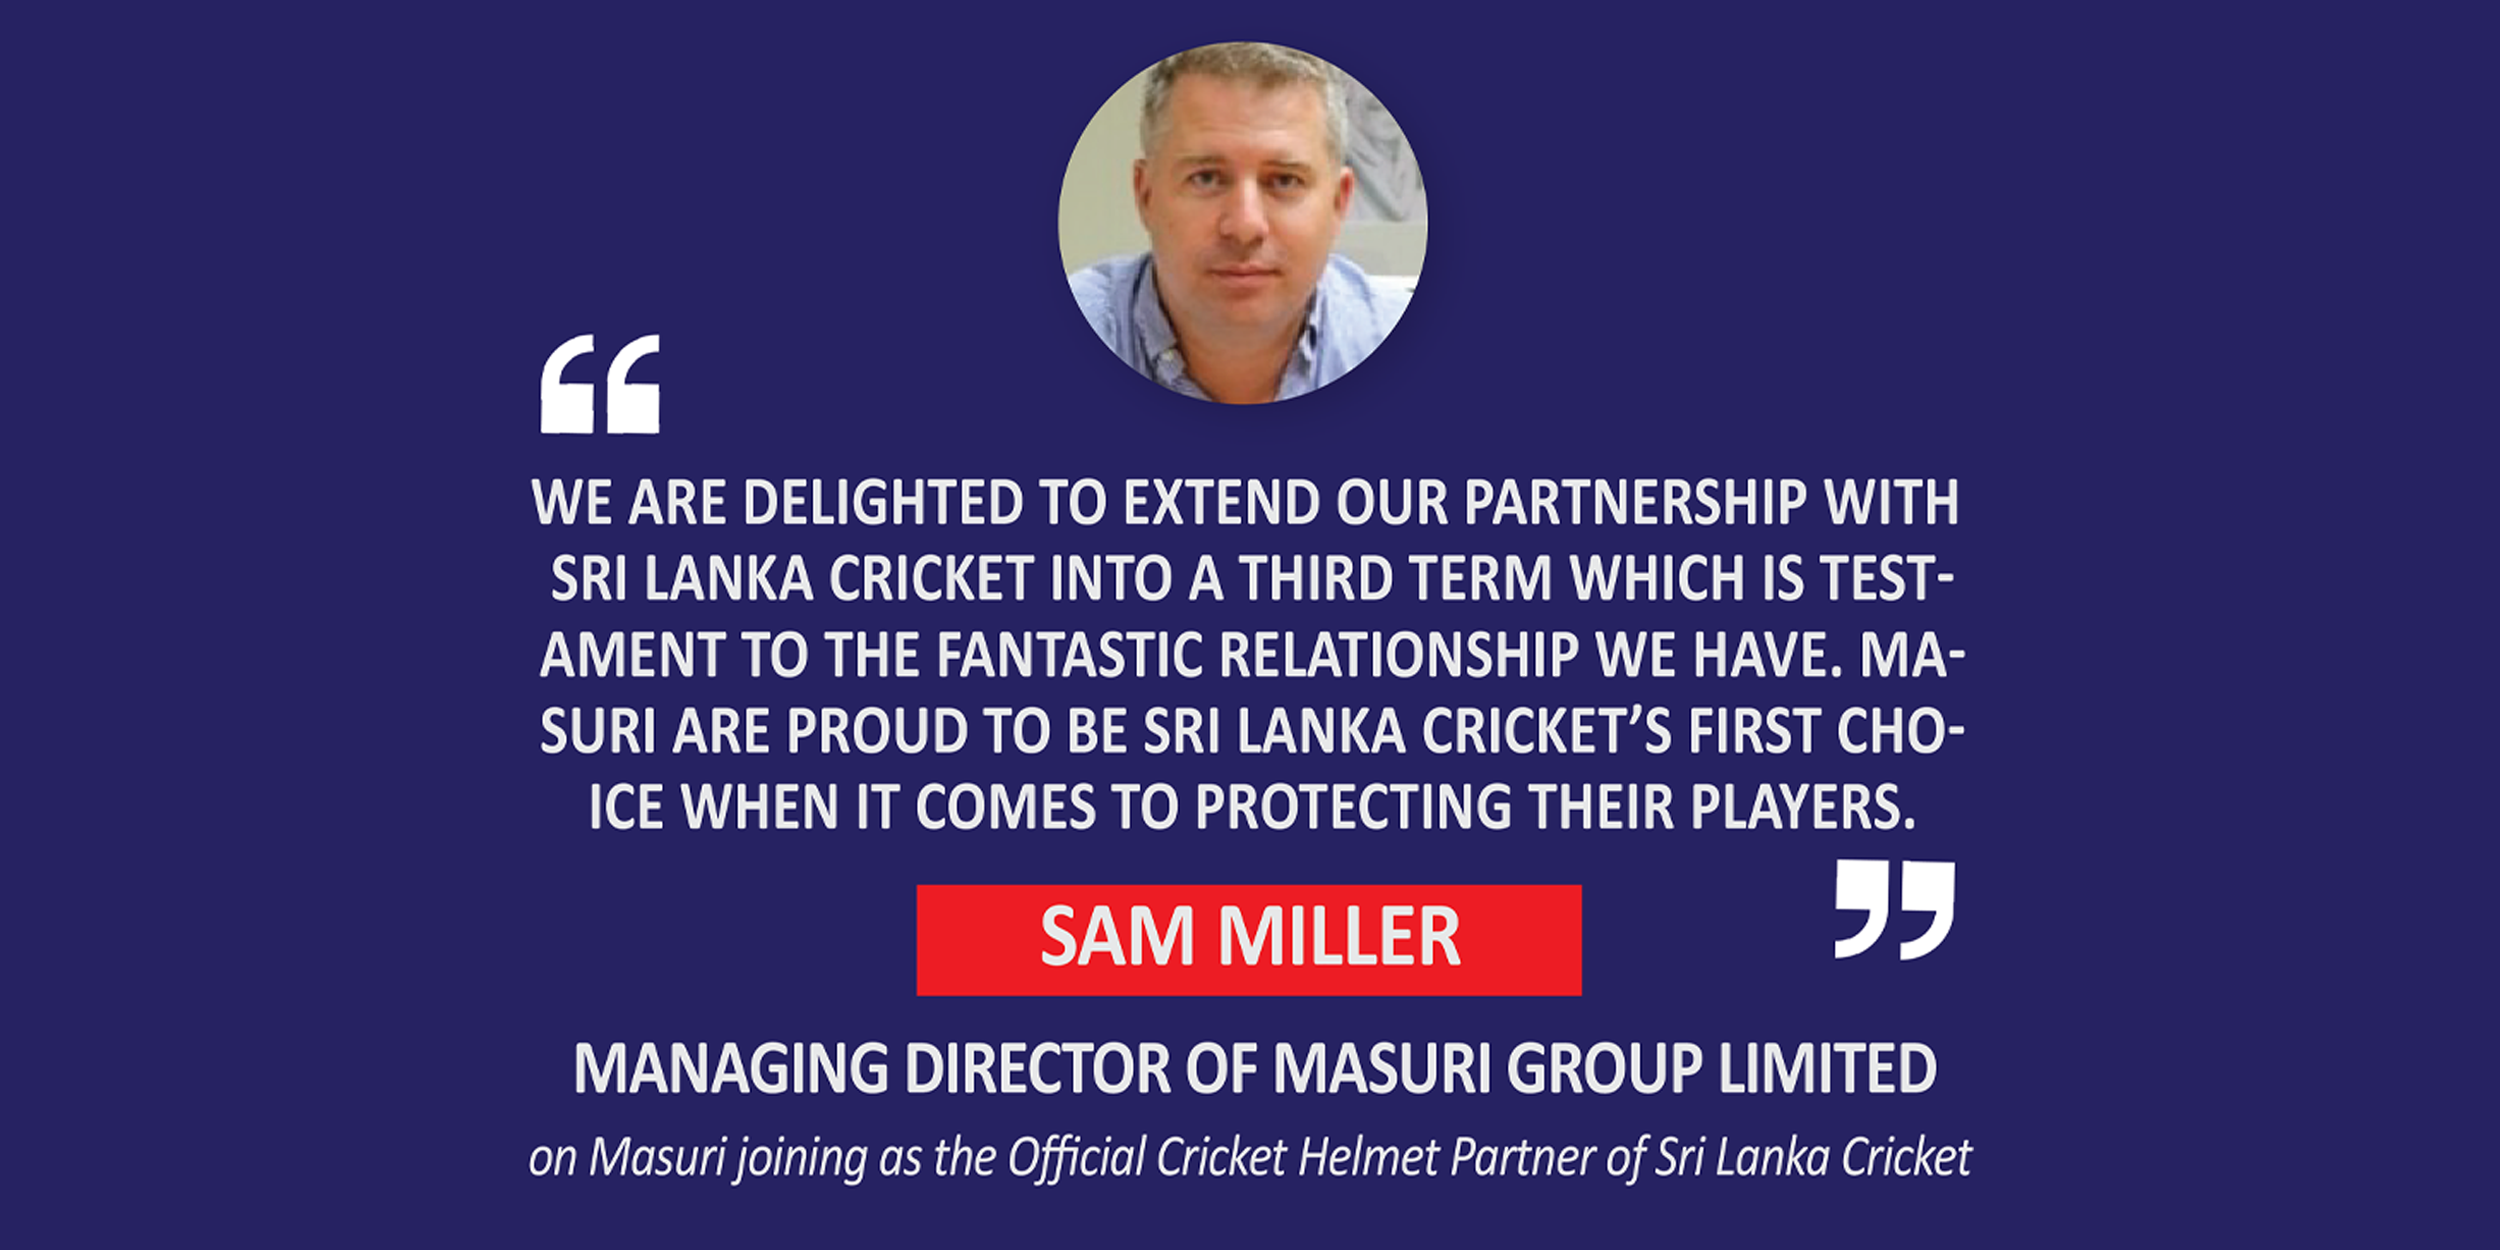 Sam Miller, Managing Director of Masuri Group Limited Masuri Joining in as the Official Cricket Helmet Partner of Sri Lanka Cricket